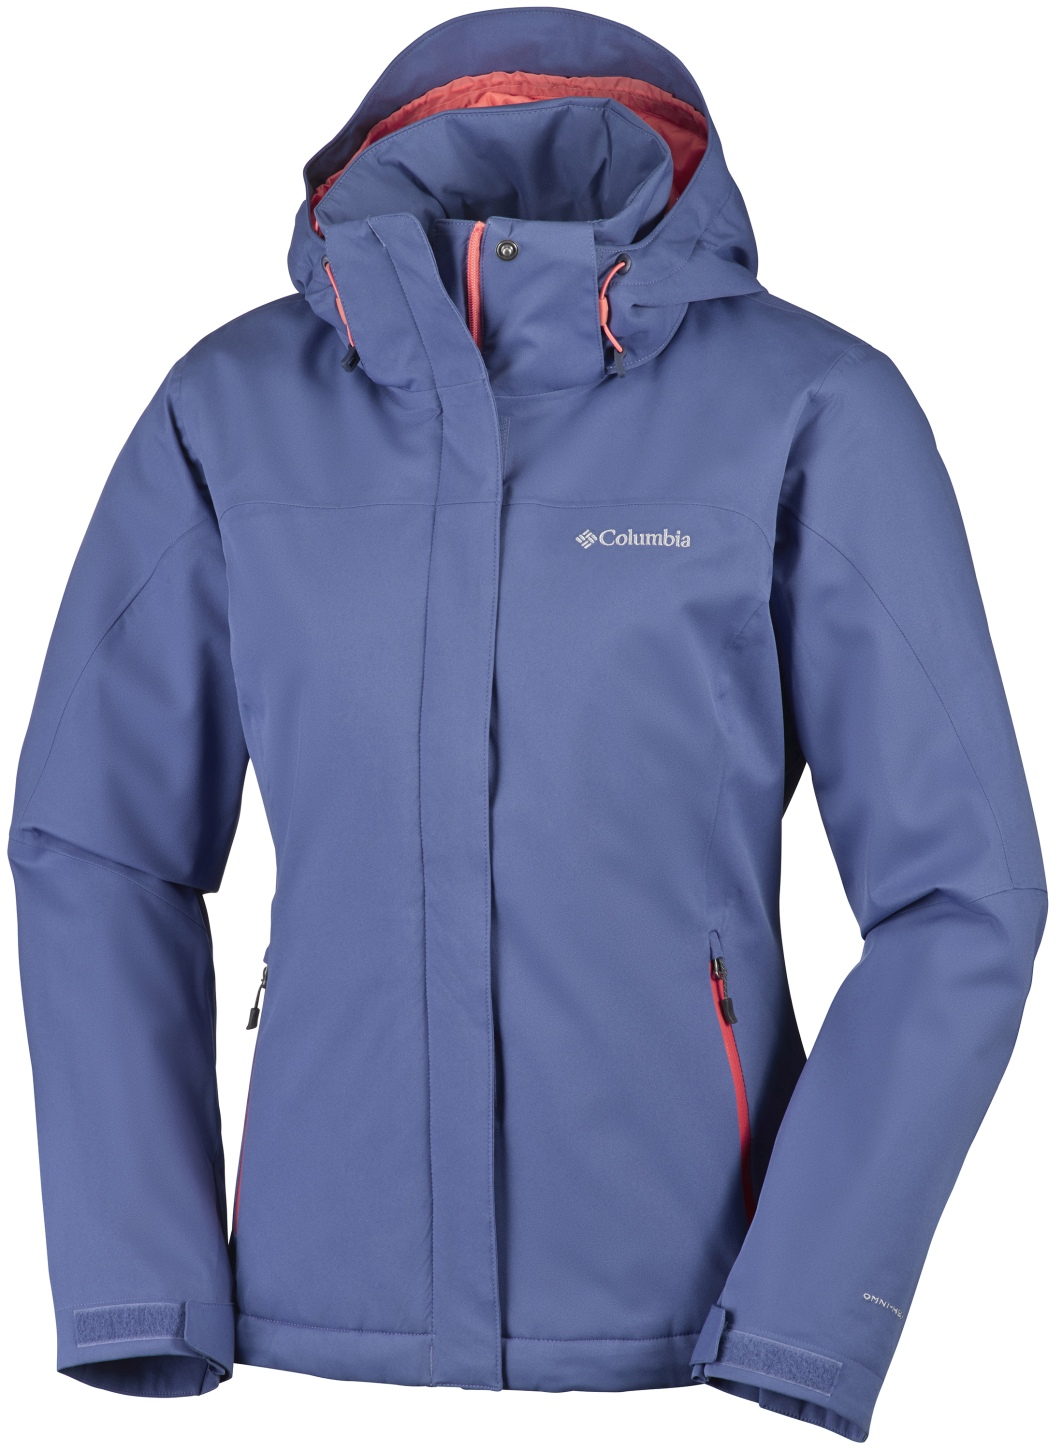 Columbia Women's Everett Mountain Jacket Bluebell, Hot Coral-30